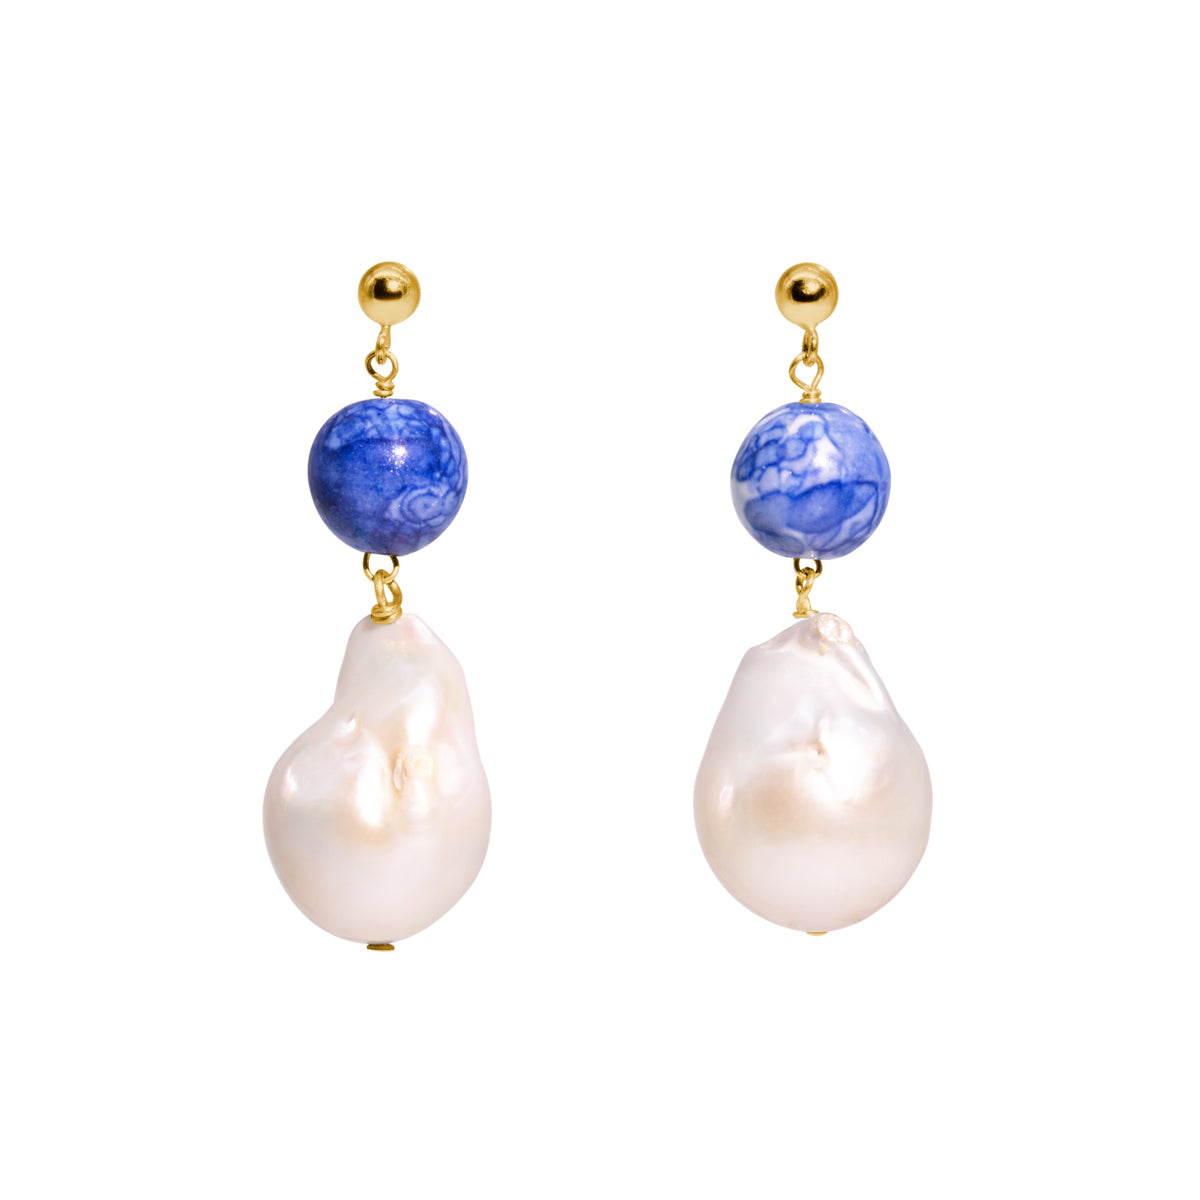 The Gold Violet Drop Earrings